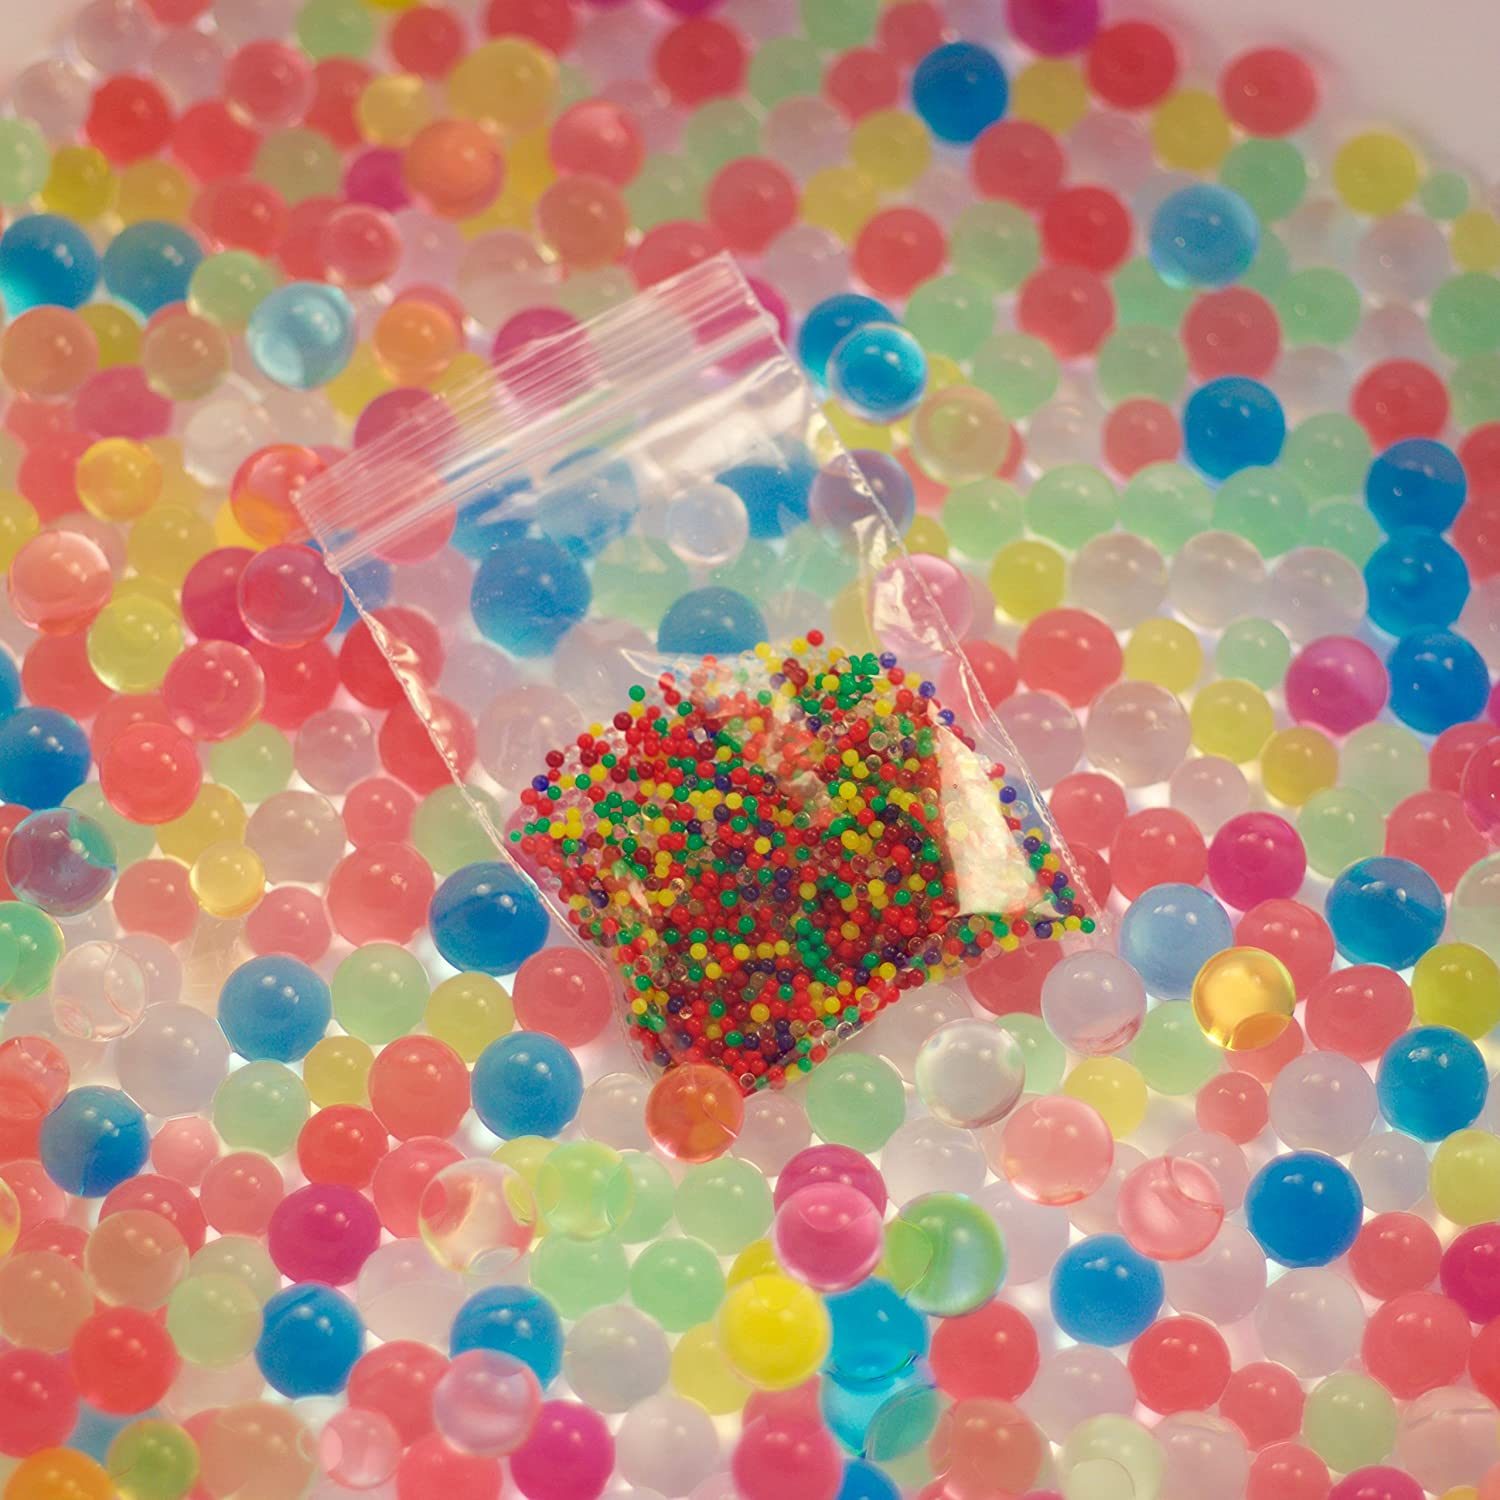 1000 Water Beads, Orbeez Replacement, for Play, Sensory, Science etc FunSociety